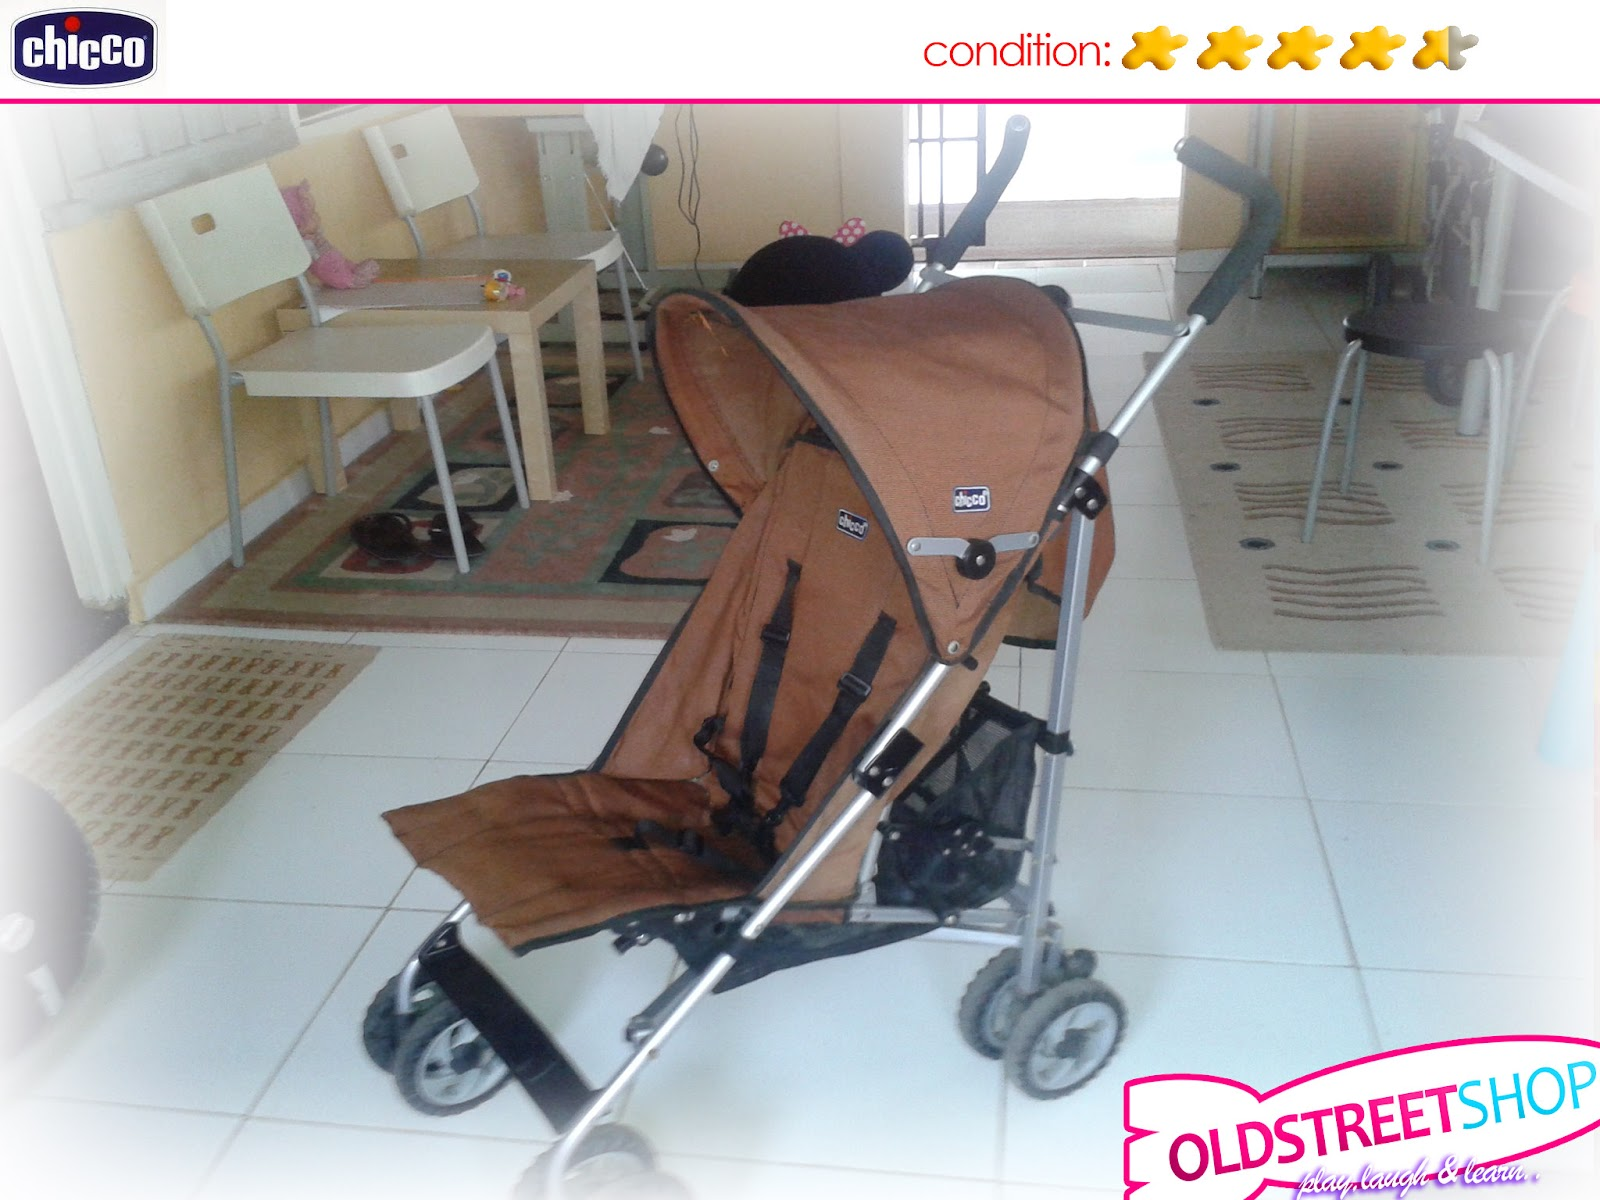 Oldstreetshop Chicco Umbrella Fold Stroller